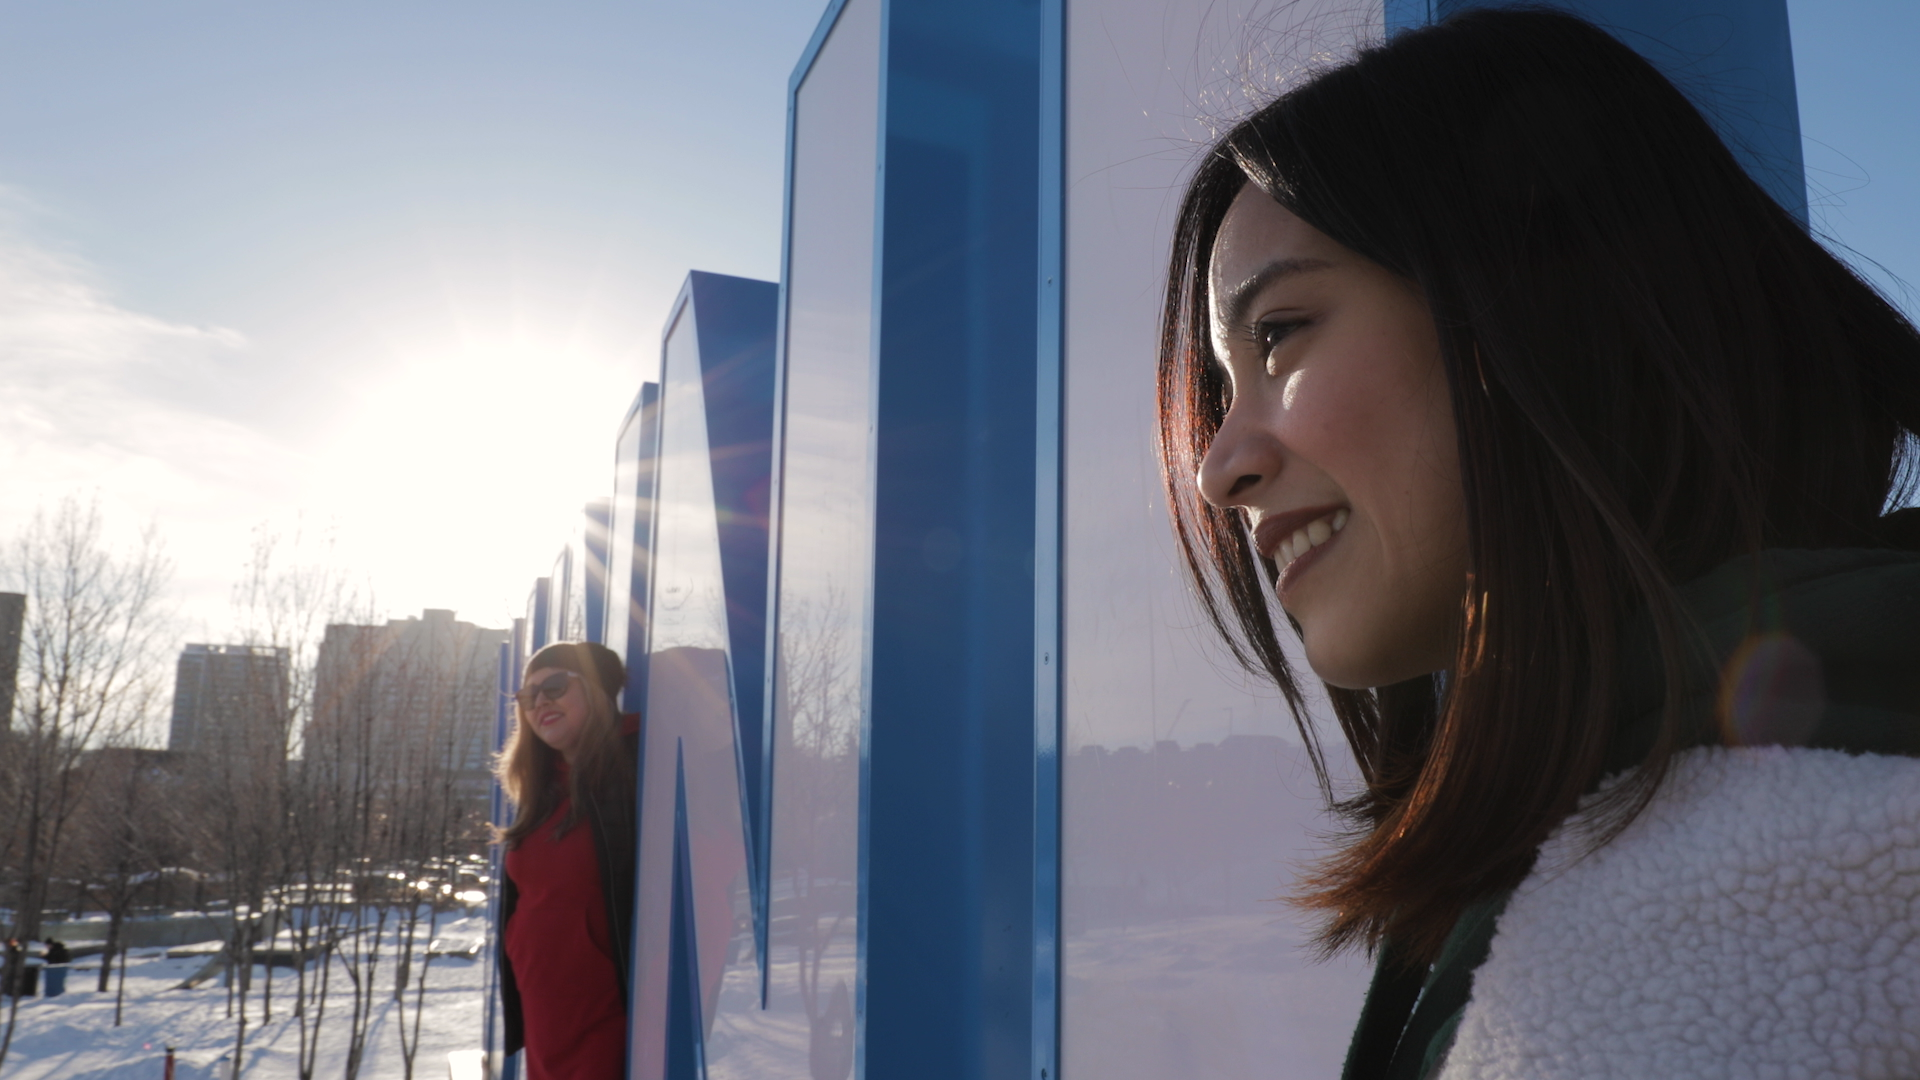 A profile image of a smiling woman standing beside the giant Winnipeg sign at the Forks in Winnipeg, Manitoba. The sun is shining and there is snow on the ground.